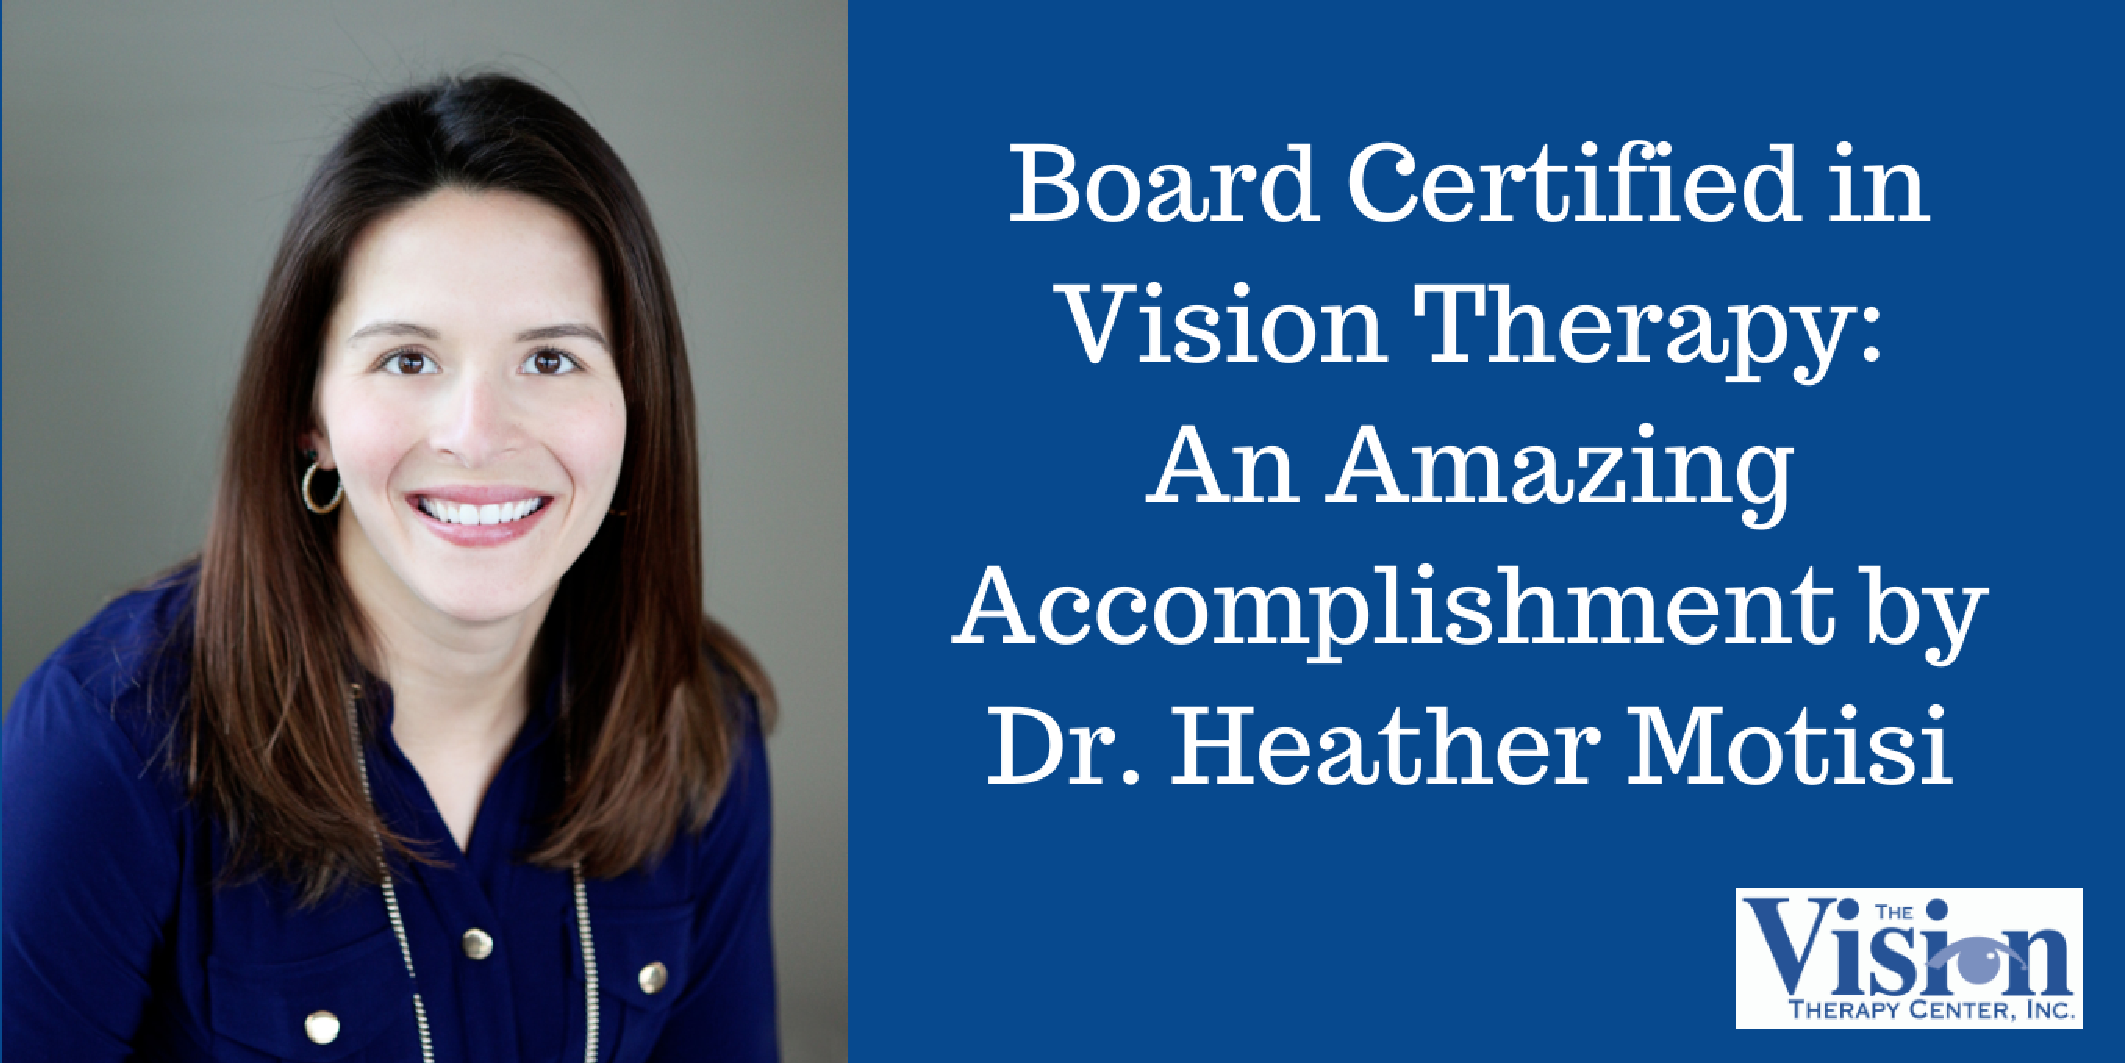 Board Certified in Vision Therapy: An Amazing Accomplishment by Dr. Heather Motisi